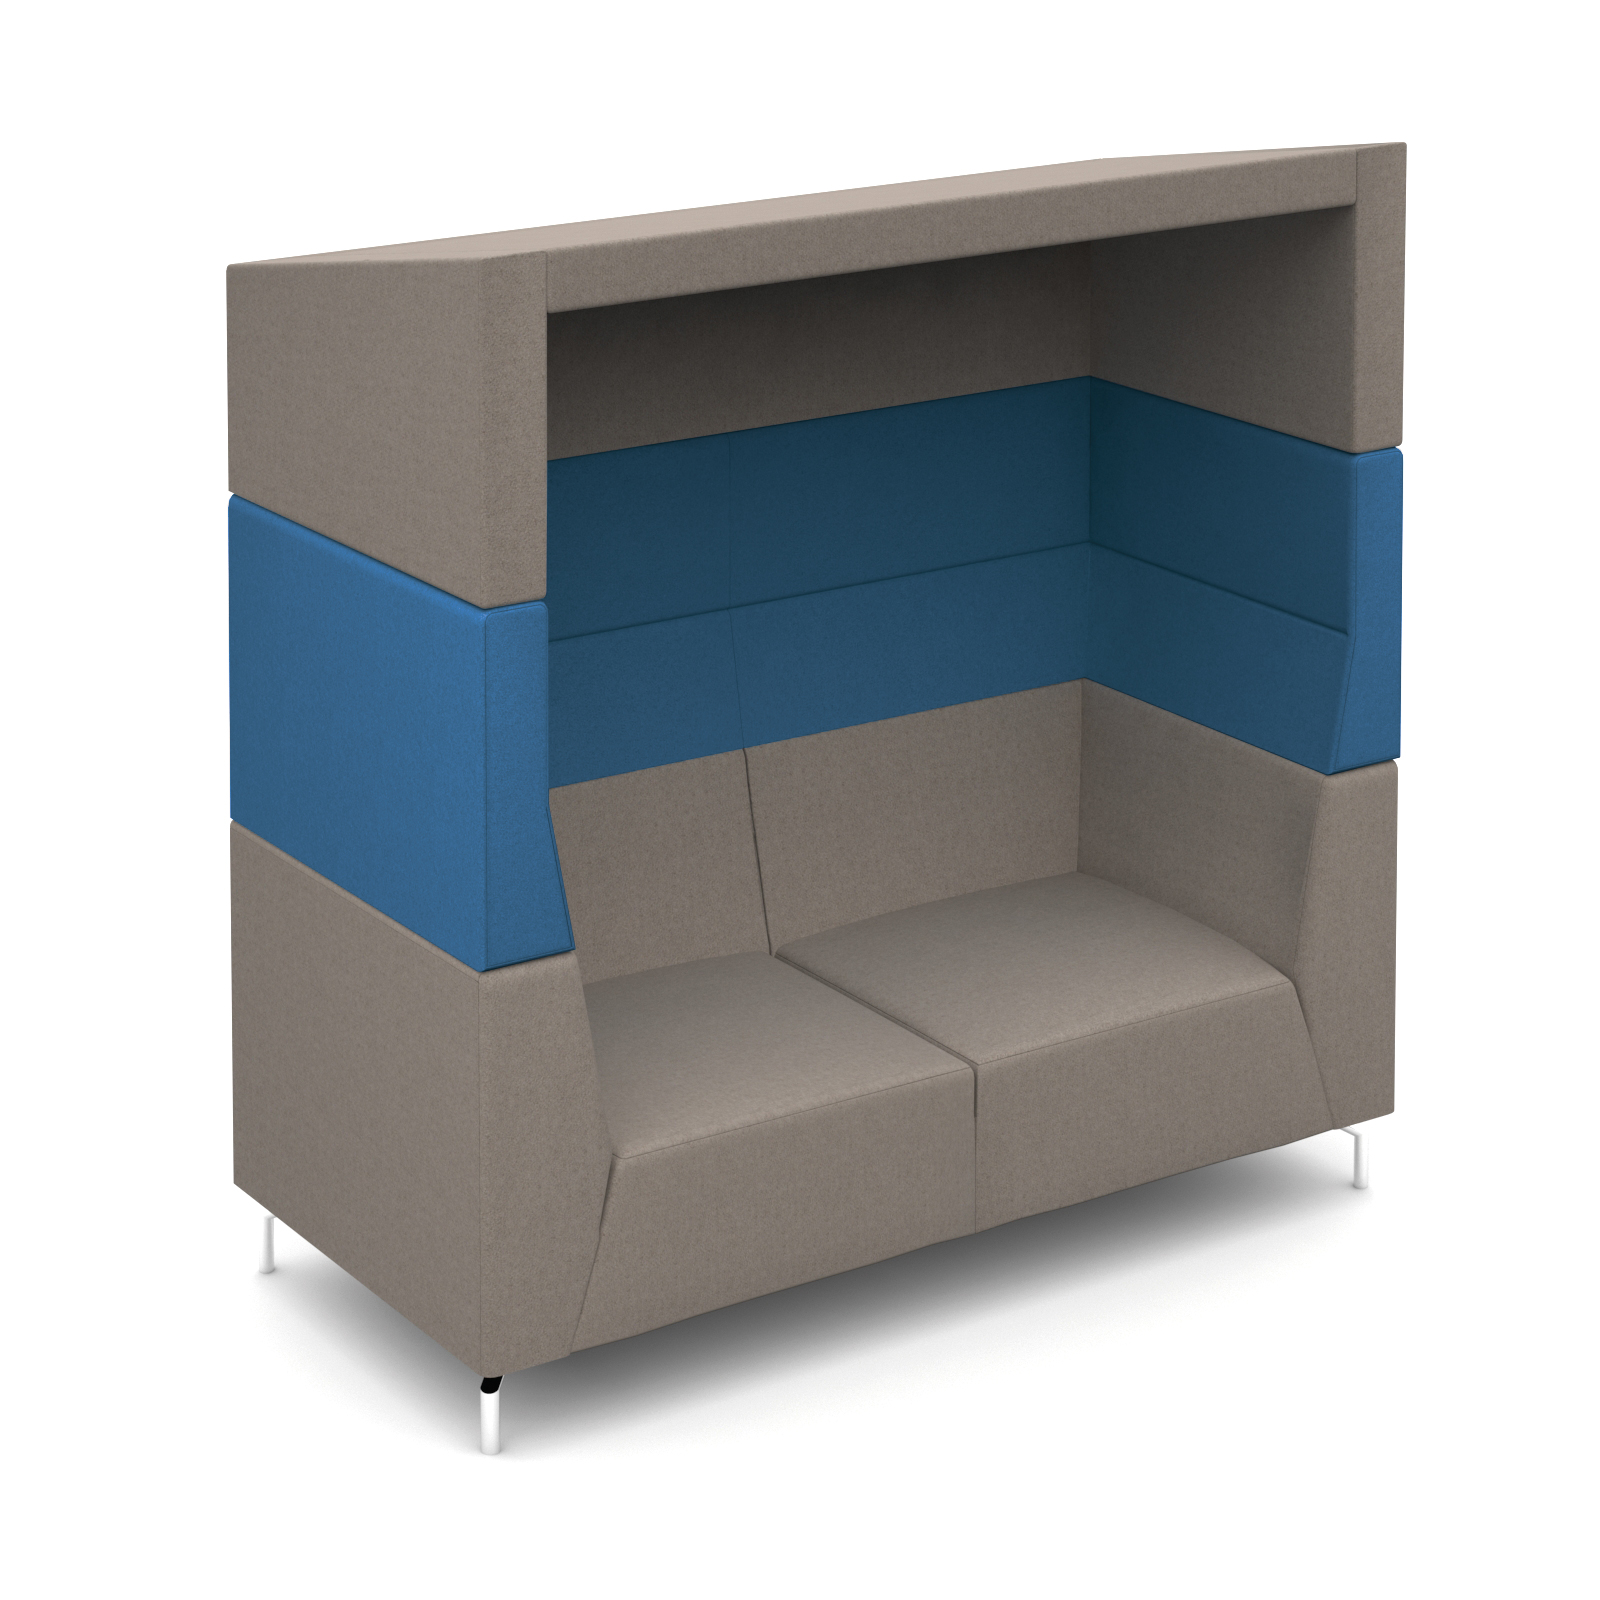 Alban Meeting Pods (1-6 Seaters, Range of Colours)